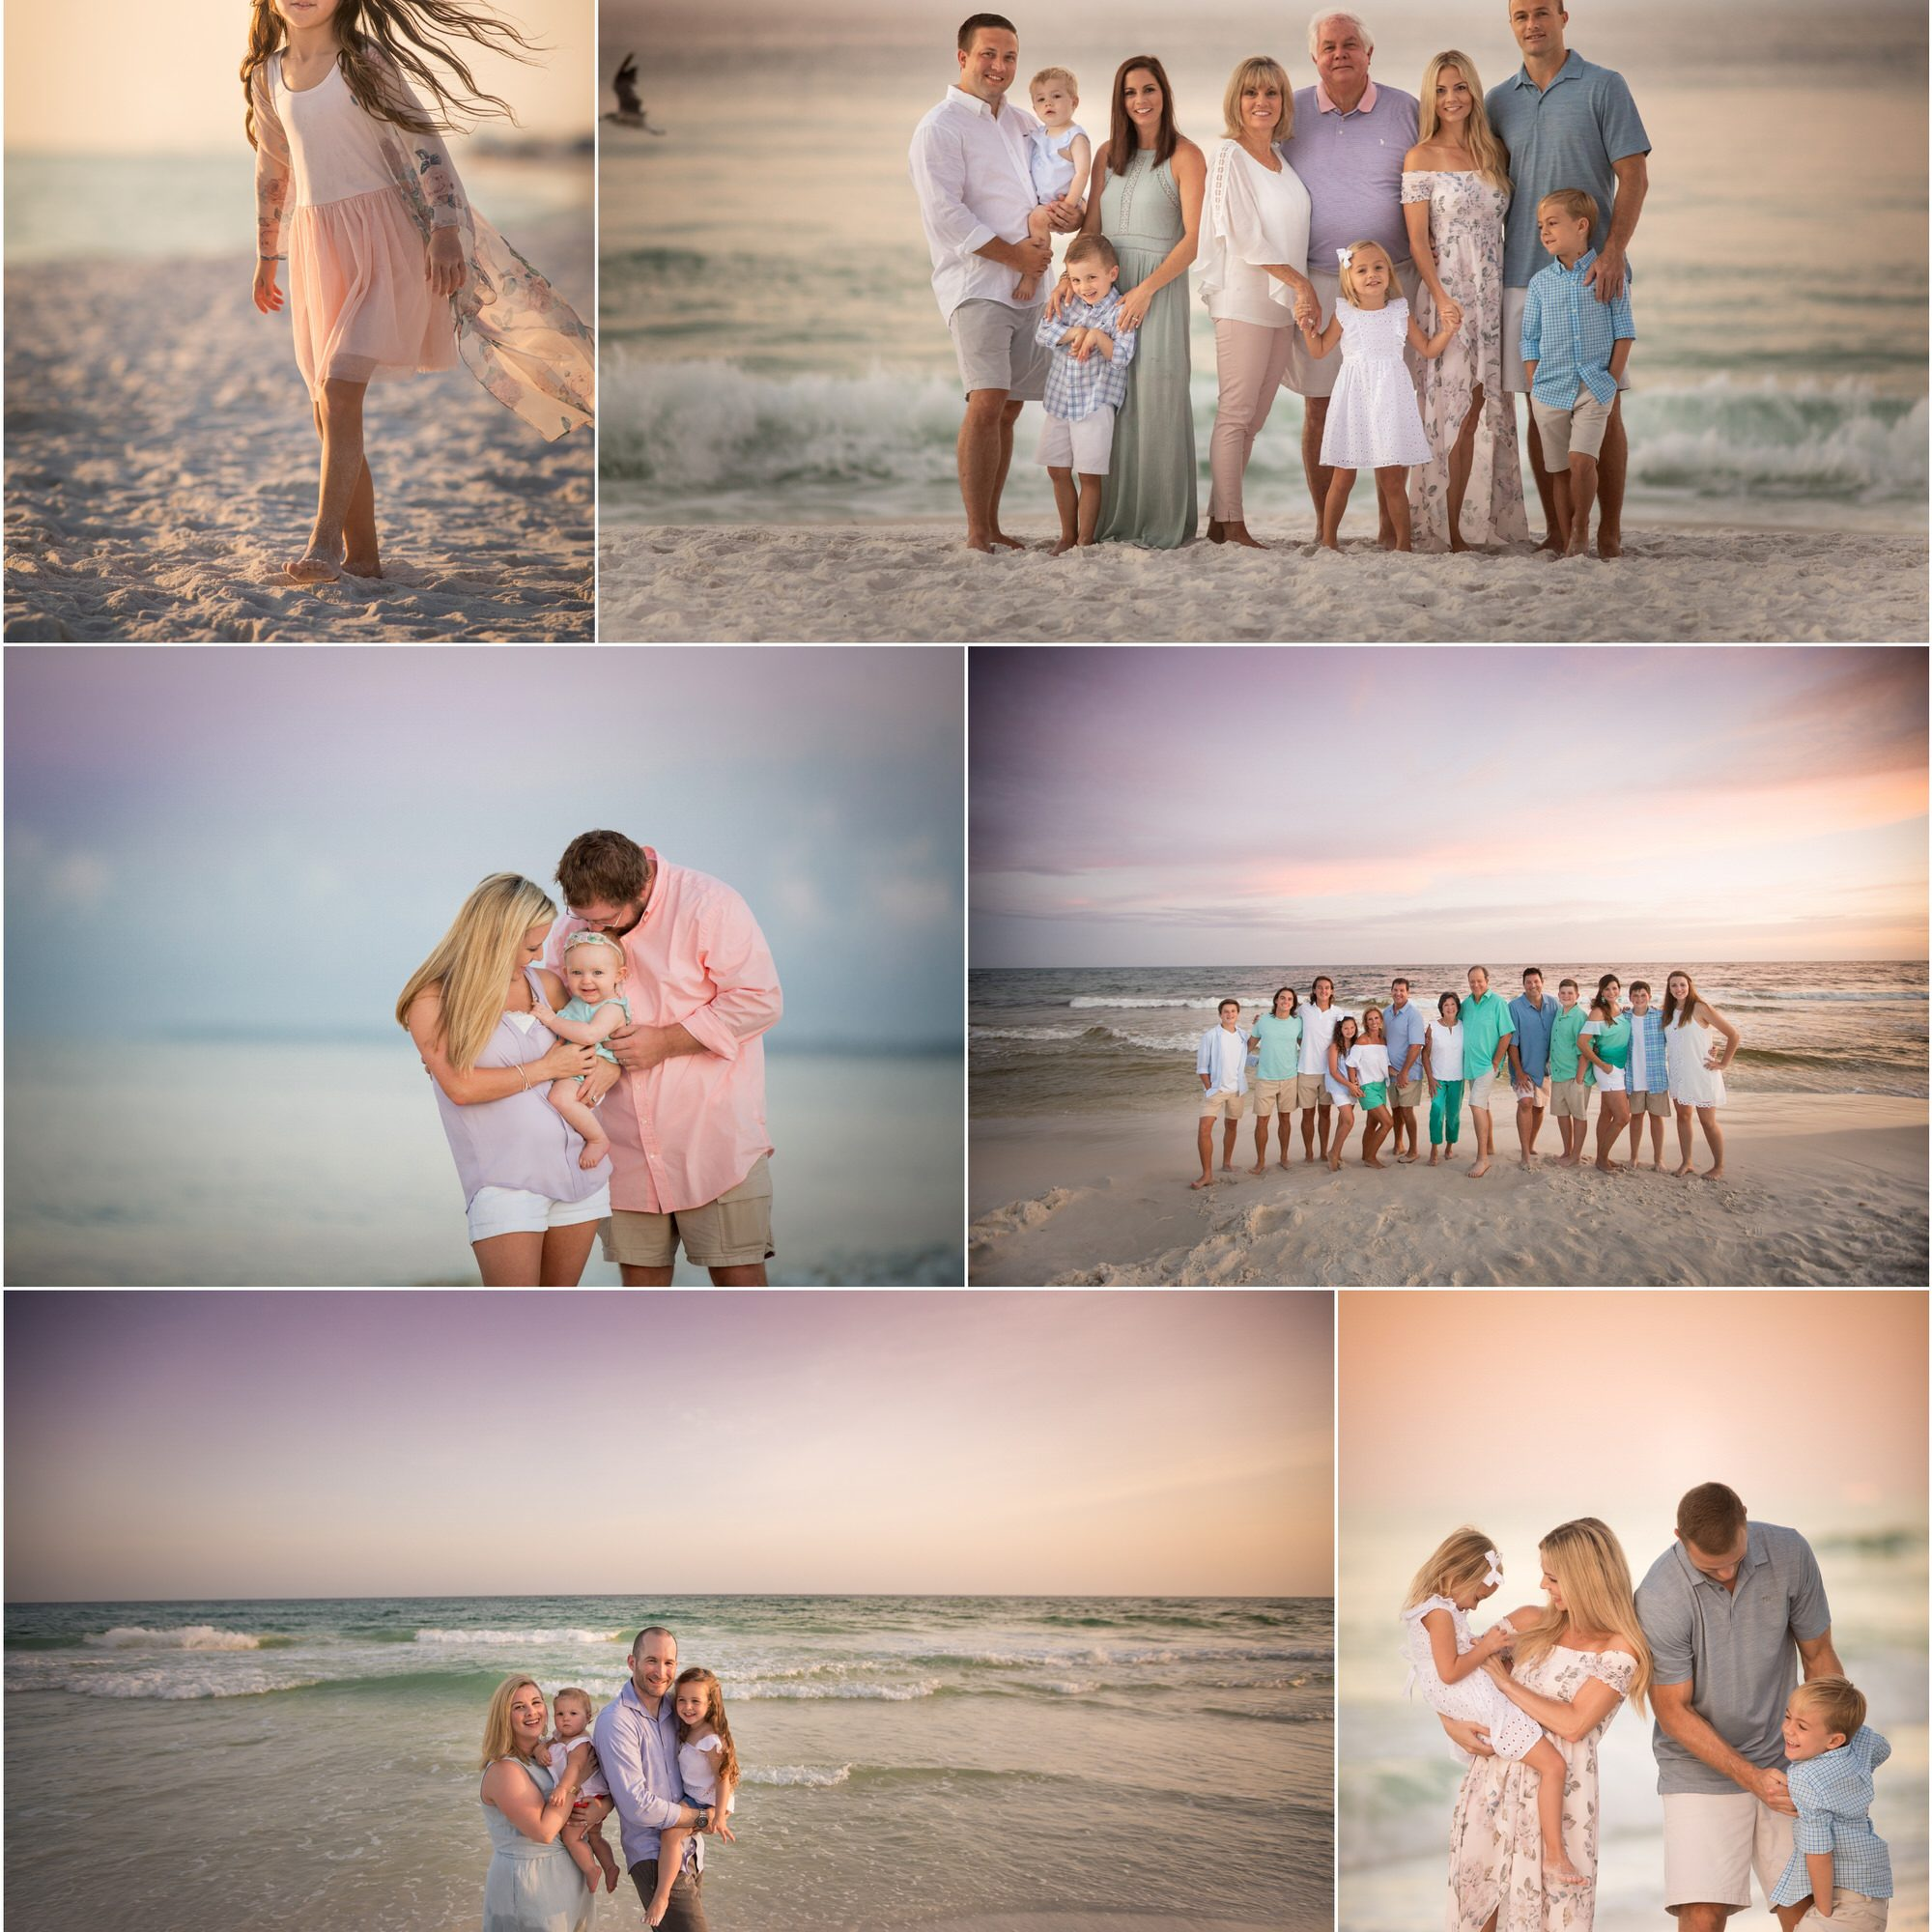 collection of family photos taken on the beach in watercolor Florida